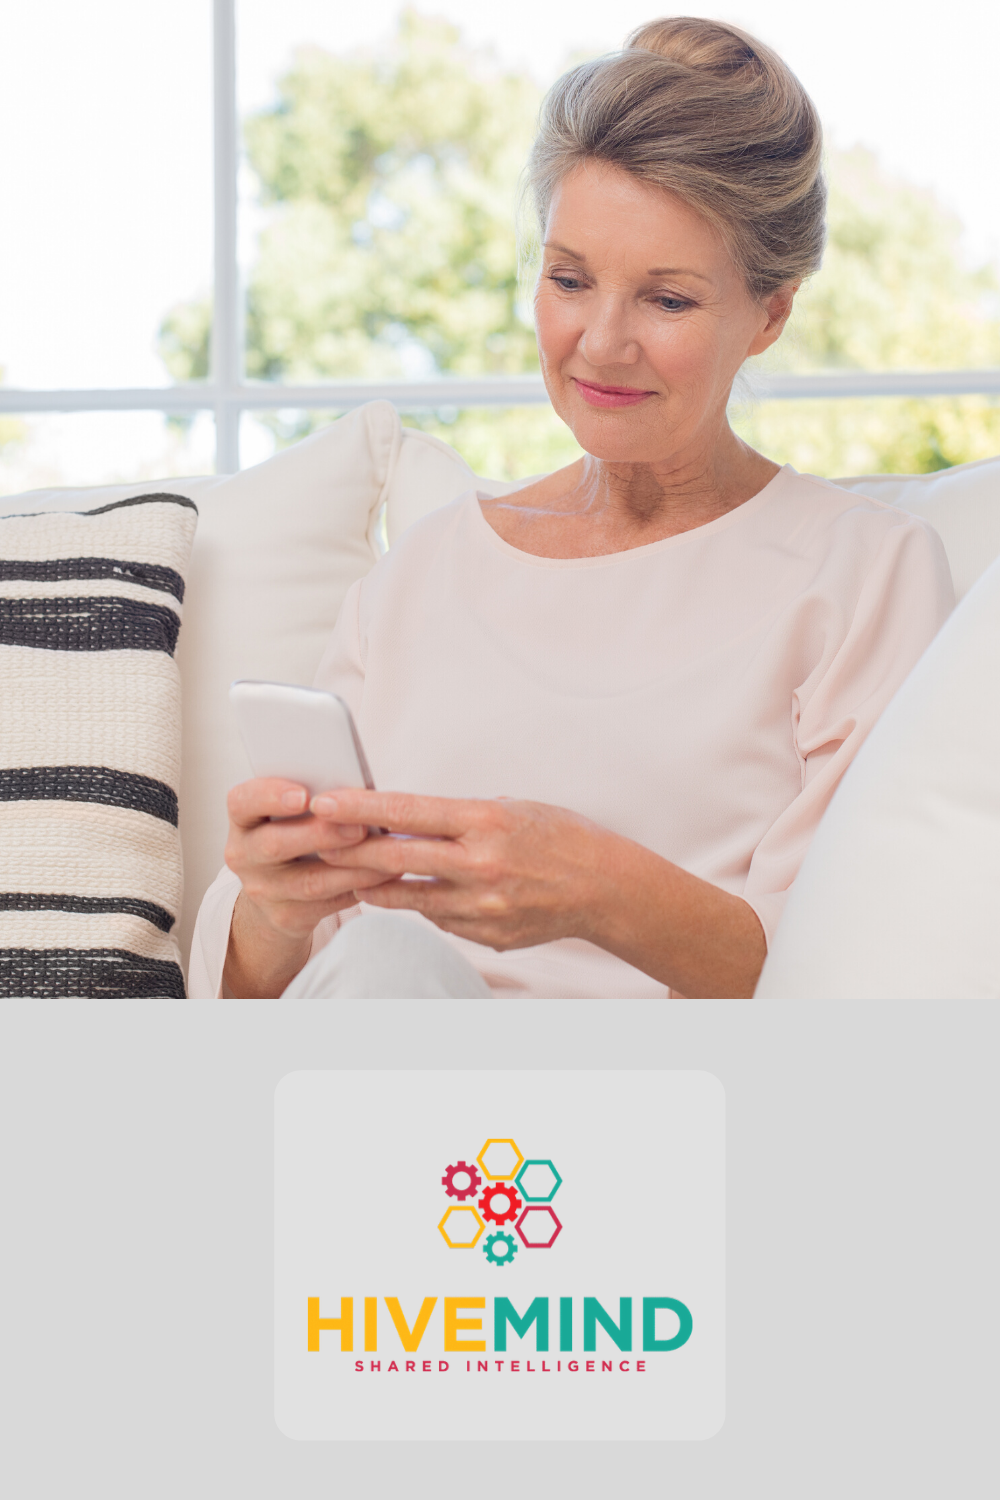 #seniorcitizens Help us improve features of the #payment apps you love. If you currently make #mobilepayments to friends and family using your Smartphone, we'd love to hear from you! Click the image to learn more! #moneytransfer #digitalwallet